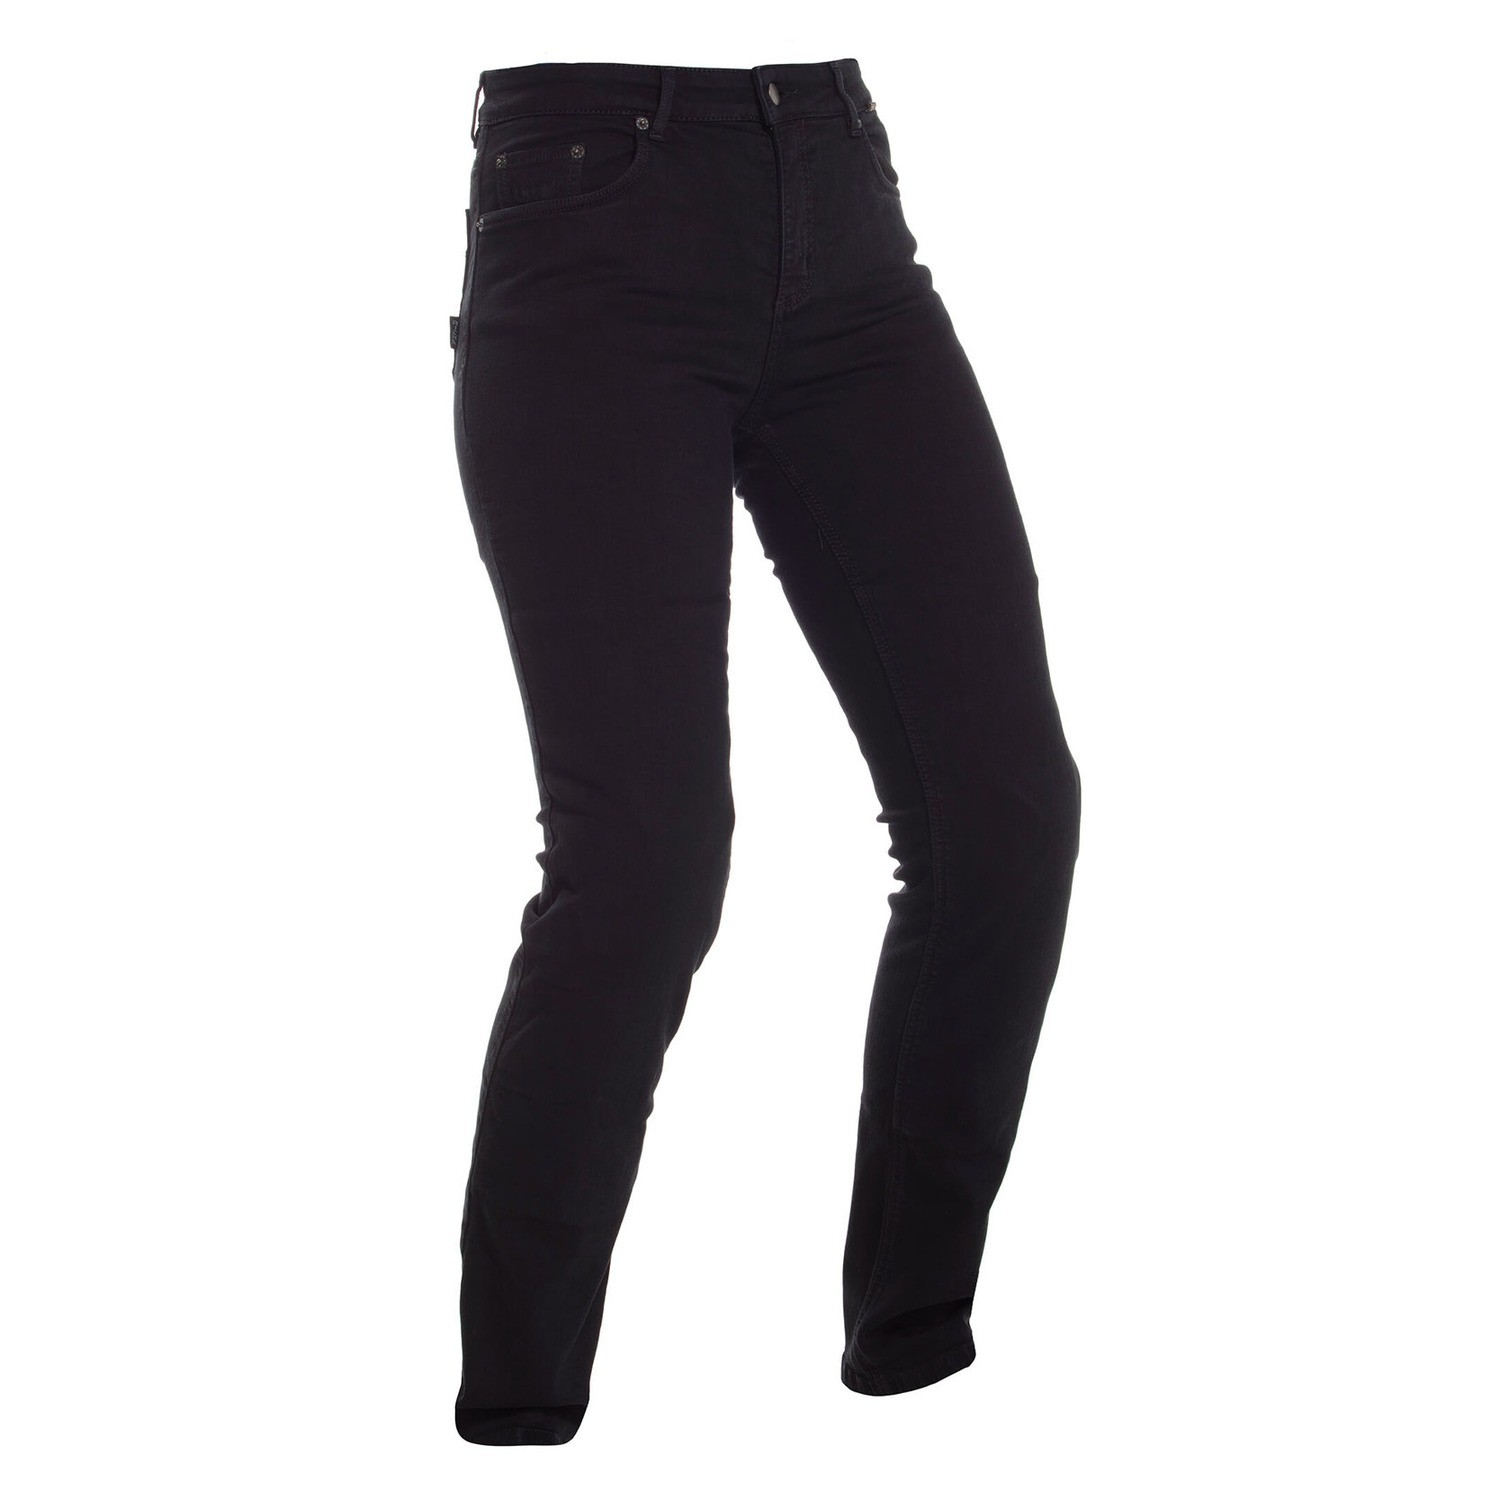 Nora Black Regular Fit Riding Jeans Women - Regular